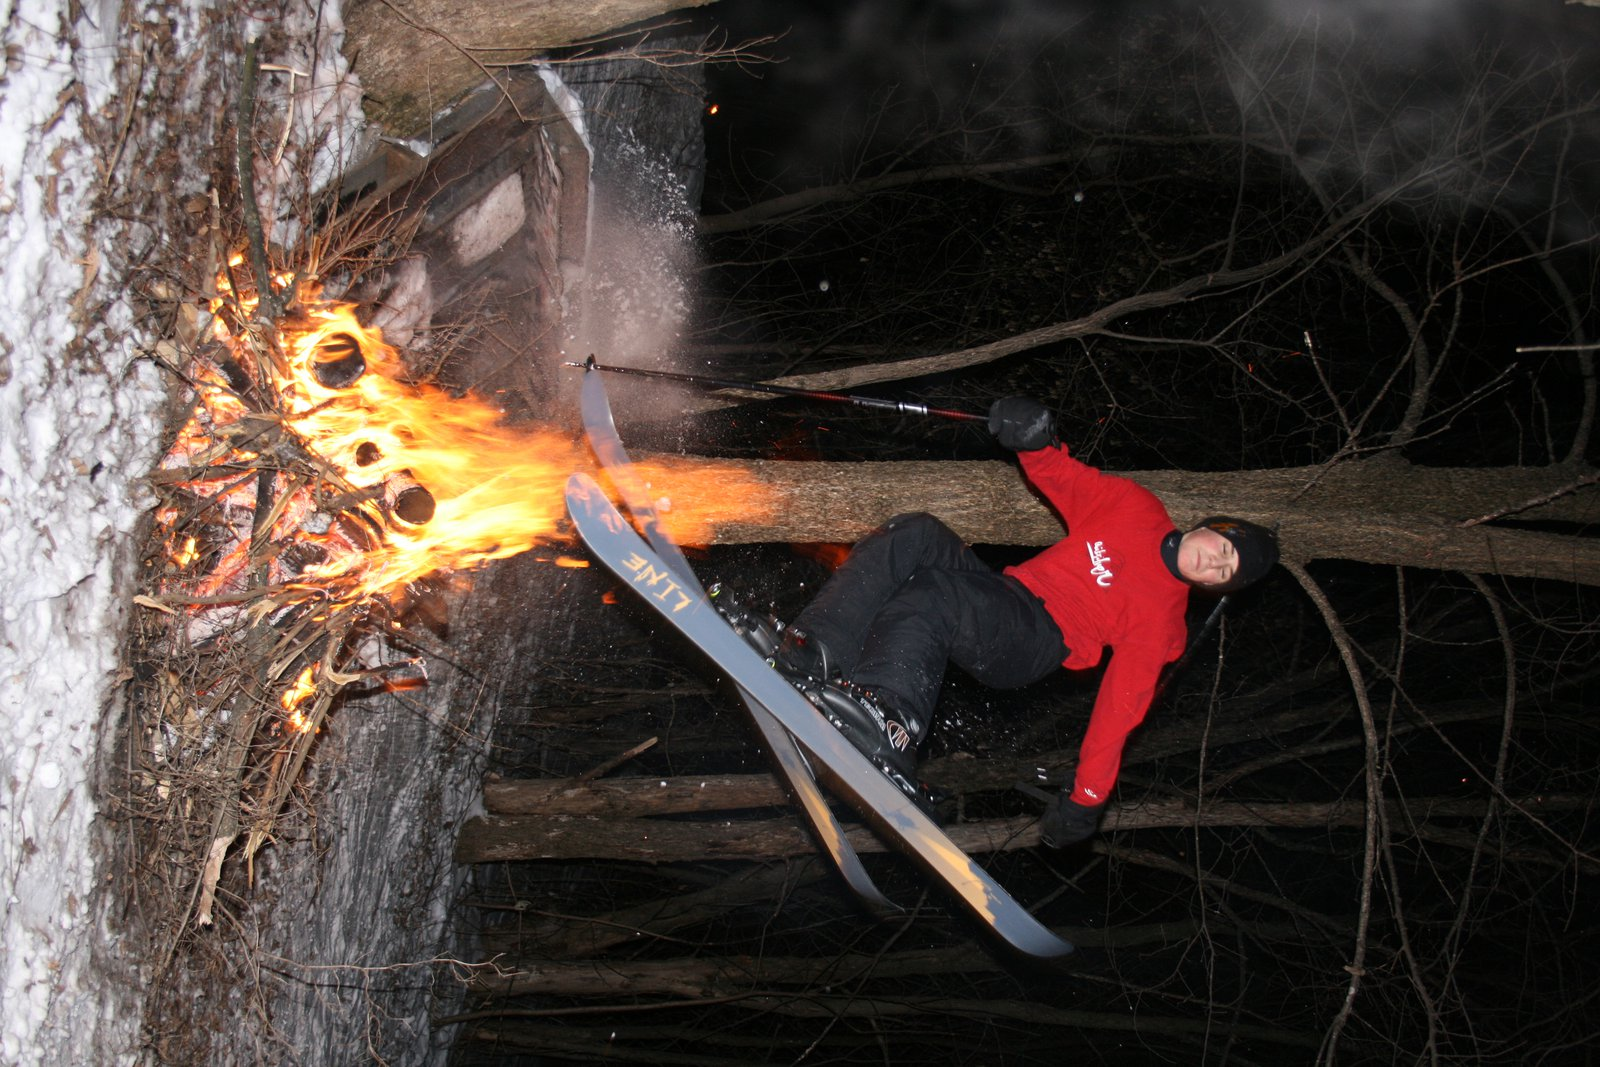 Jumpin' the fire